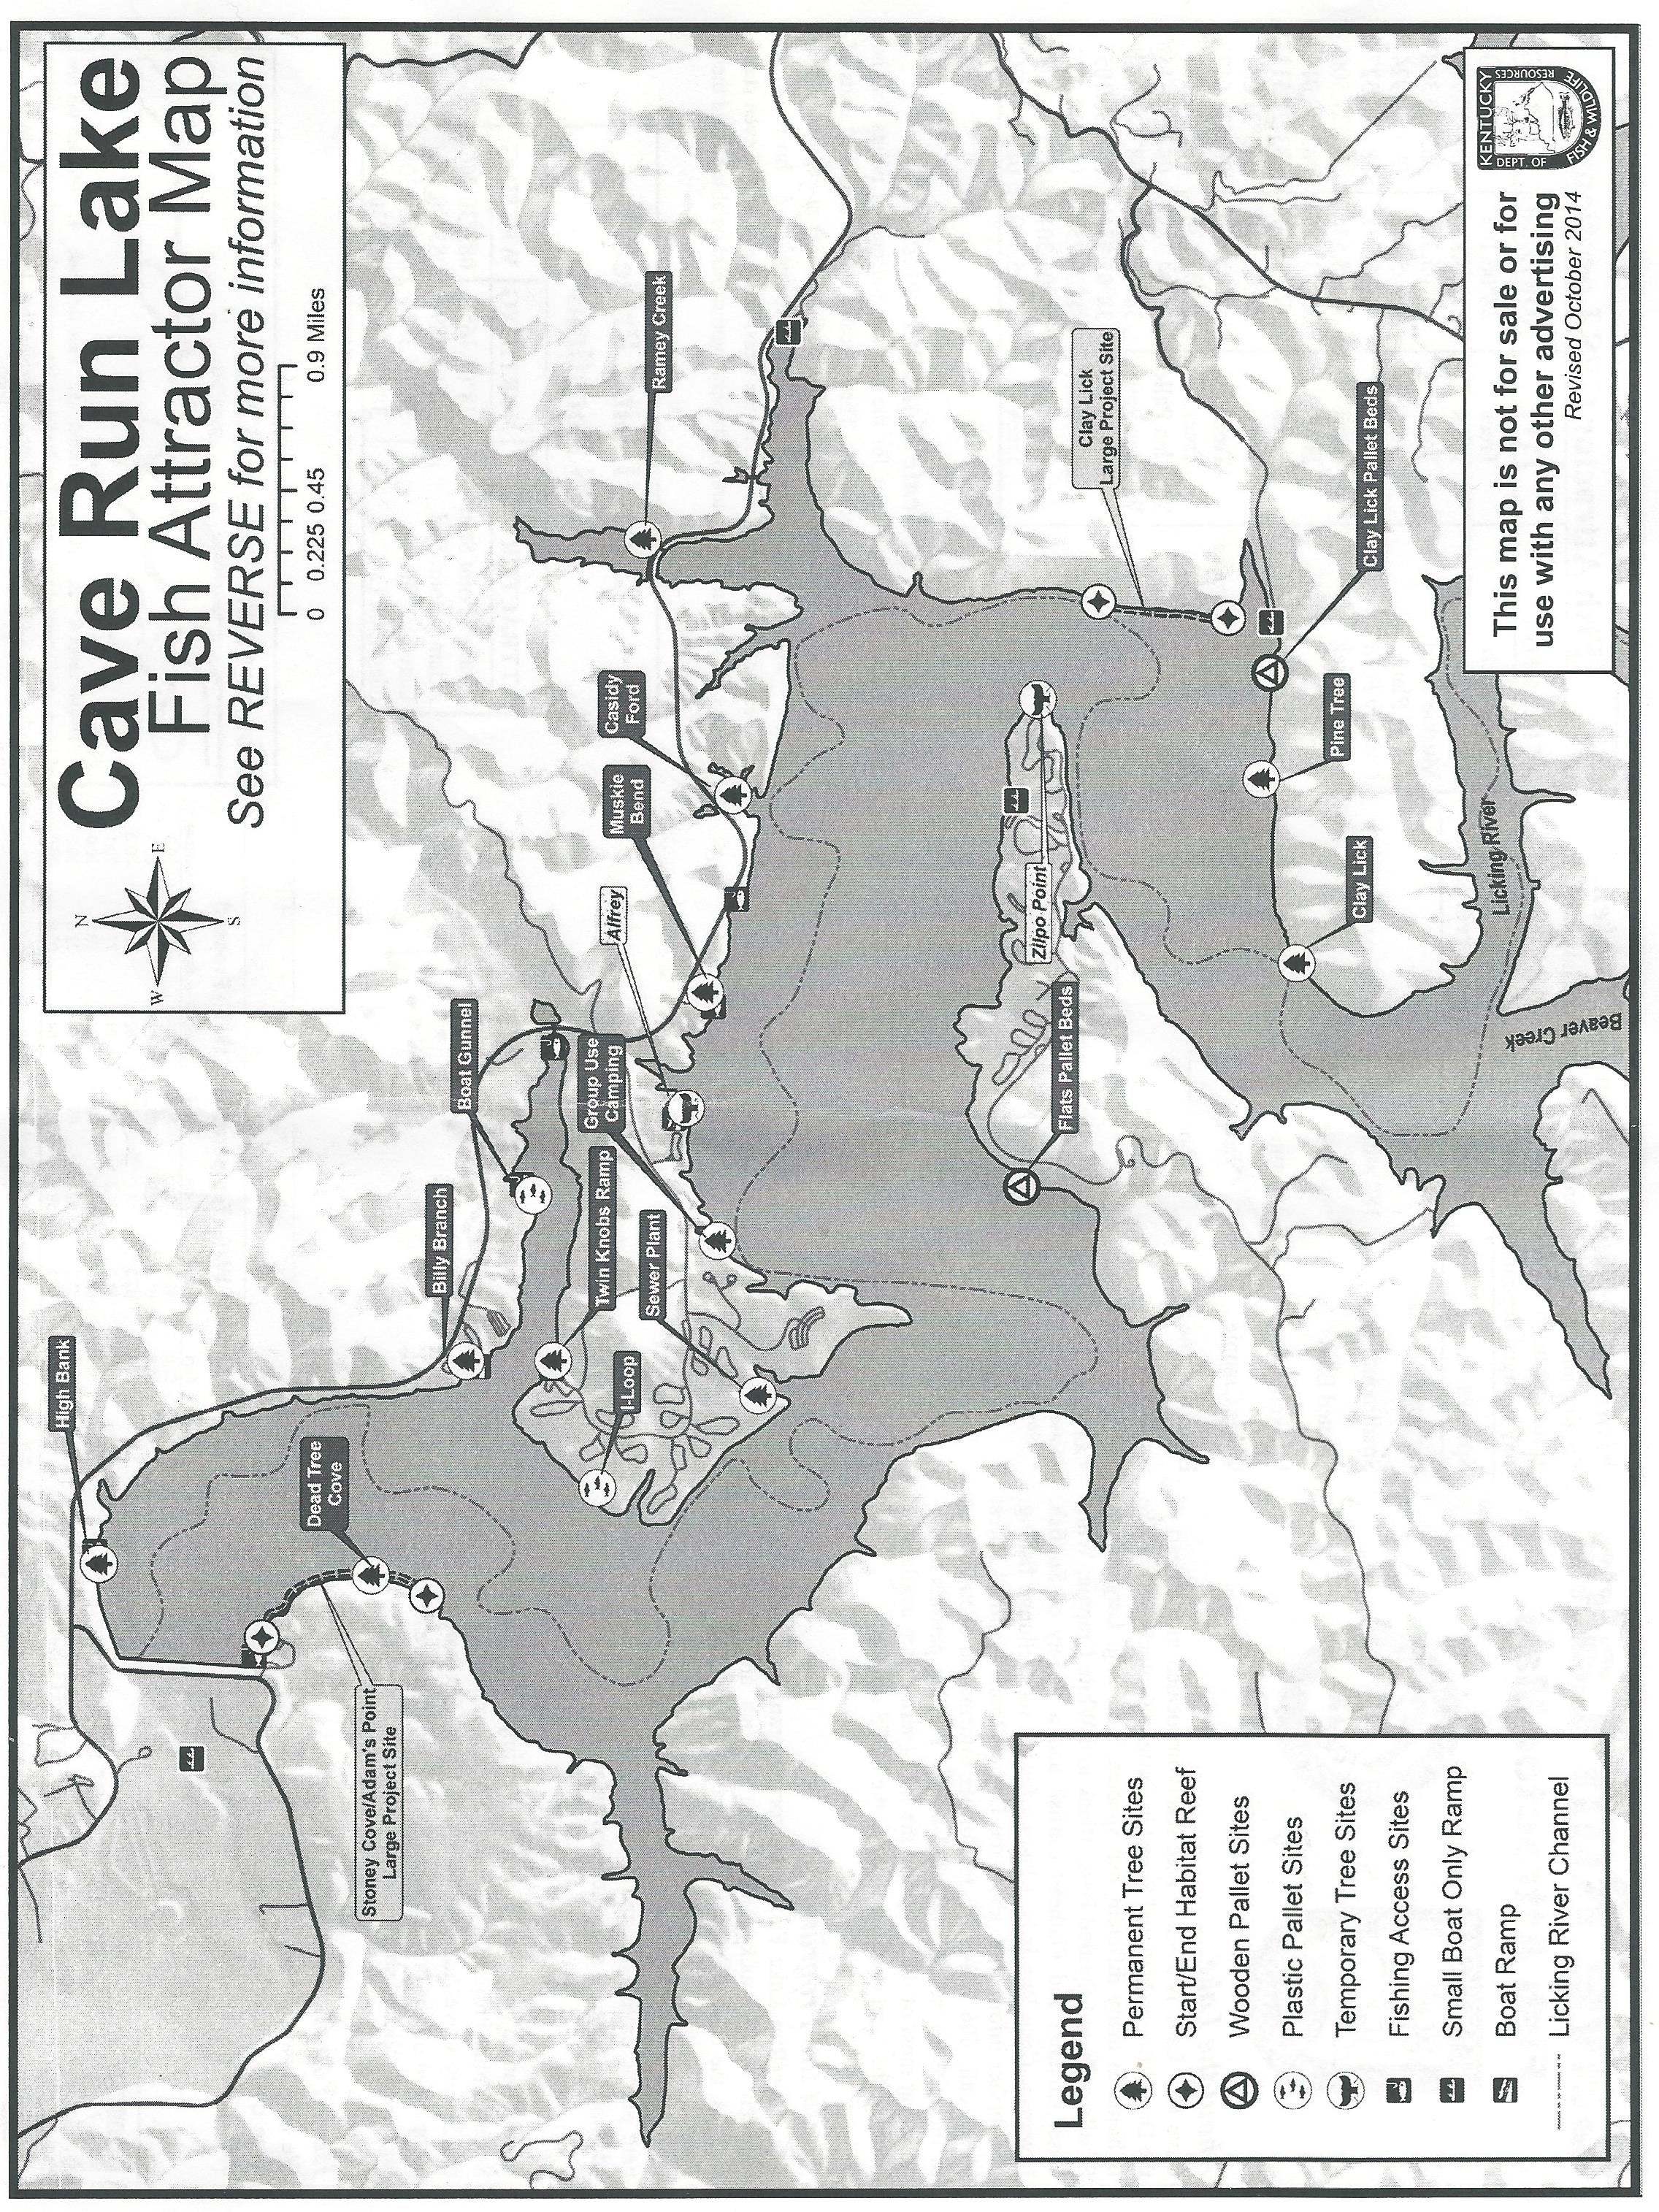 Cave Run Habitat Project Update - KentuckyAngling News ... Cave Run Lake Map on cave run fishing, cave run camping, dale hollow reservoir map, cumberland river map, cave lake fishing, cave lake ky, red river gorge climbing map, the land between lakes map, cave run zilpo, cave run marina, cave run multiplication, daniel boone forest map, ohio river map, cumberland falls map, united states map,